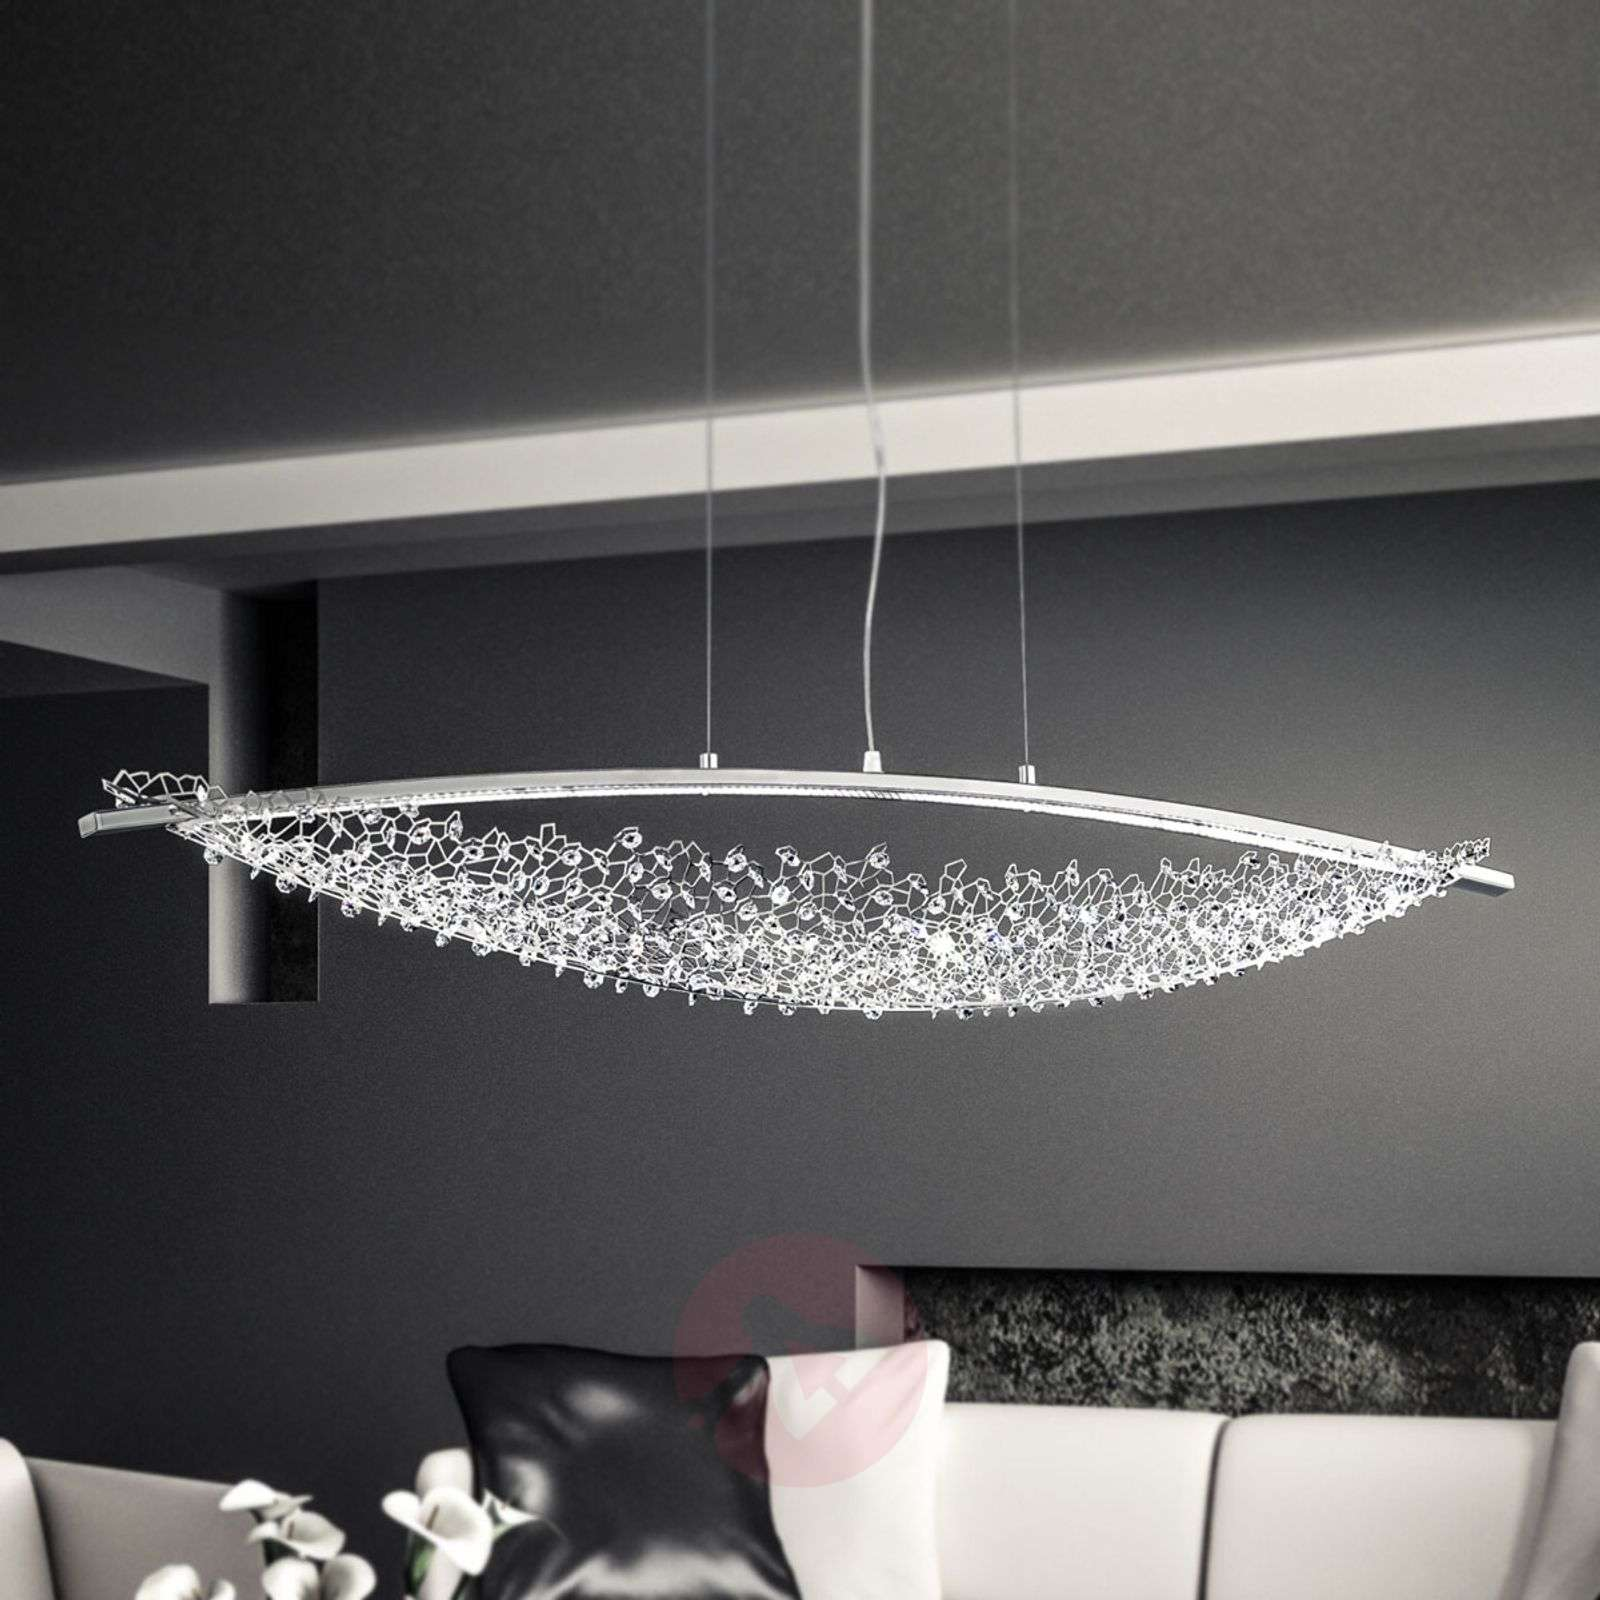 132 cm lang led pendellamp amaca m swarovski. Black Bedroom Furniture Sets. Home Design Ideas